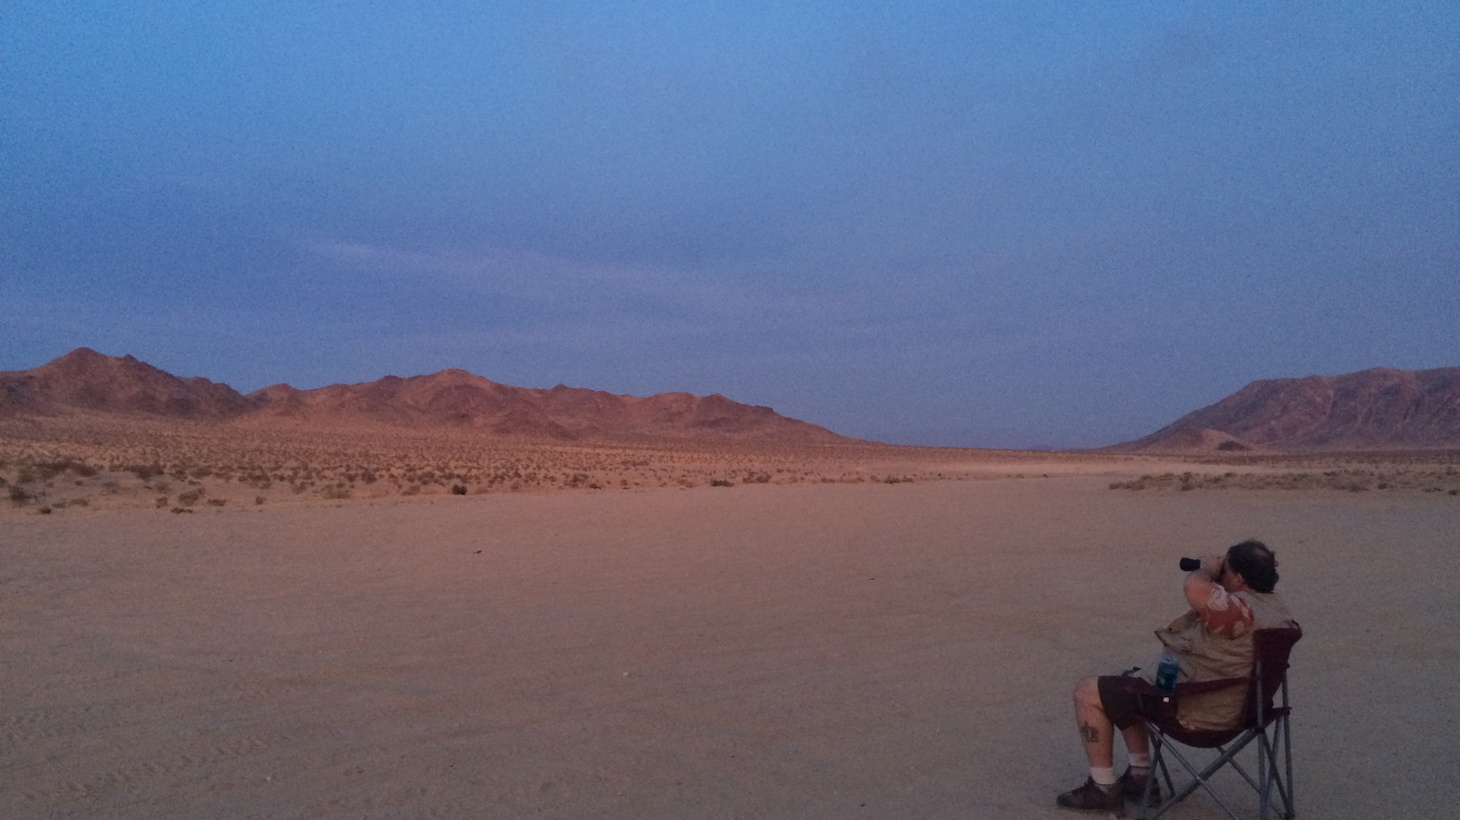 There's a place in the desert where people gather. They have different beliefs. But when they look into the night sky, they all share one idea.